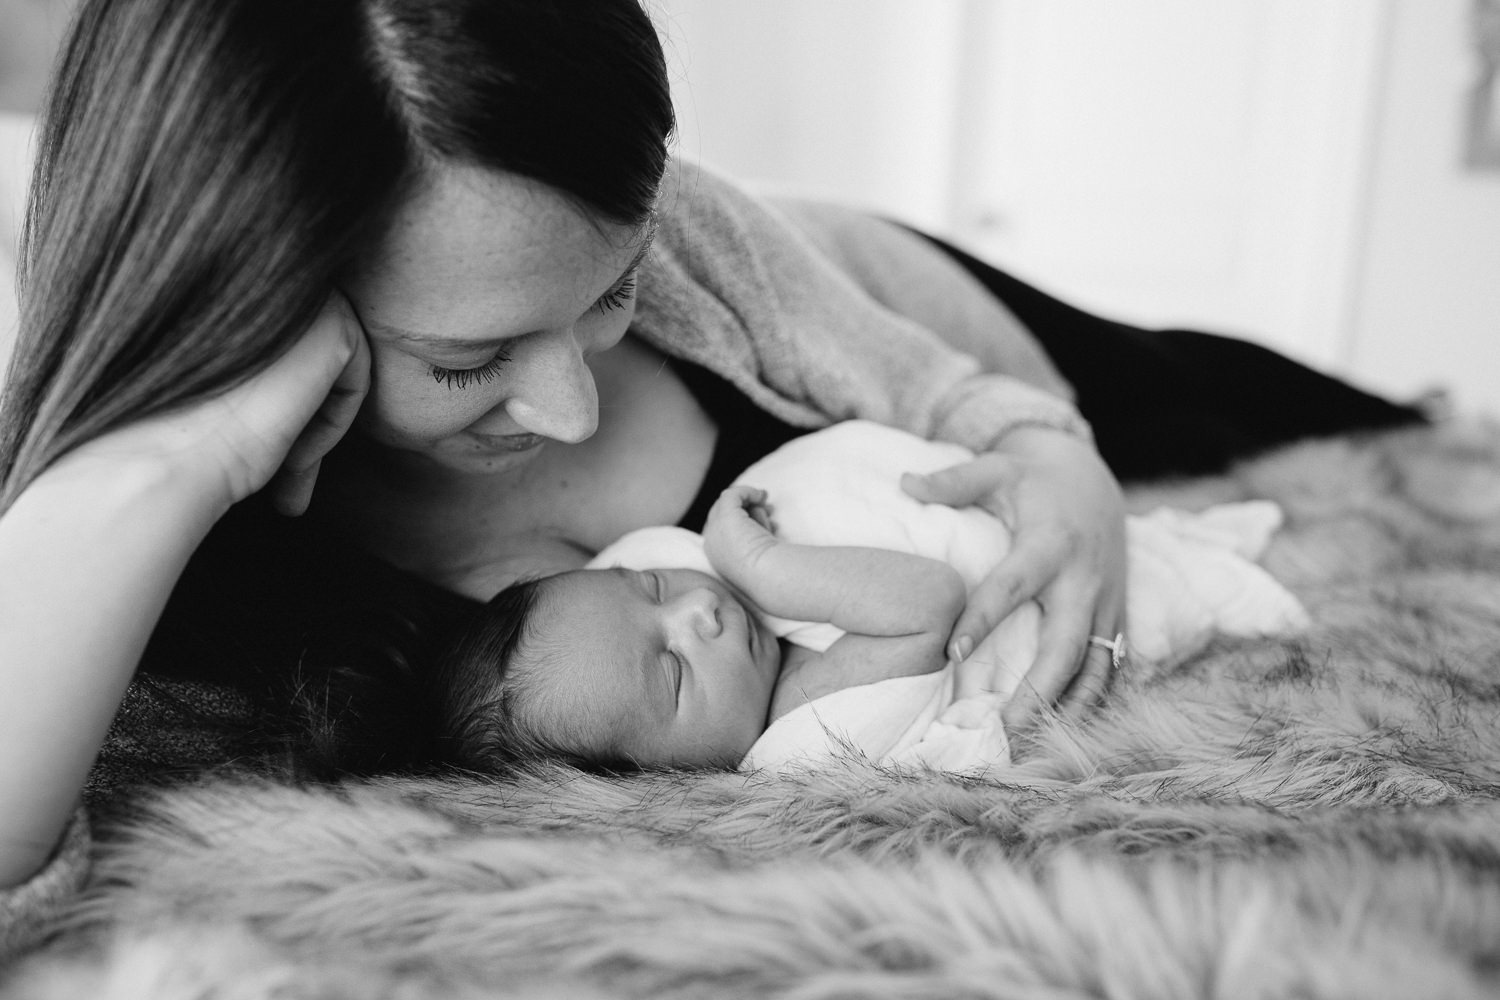 new mom lying on bed looking at sleeping, swaddled 2 week old baby boy - Barrie In-Home Photography